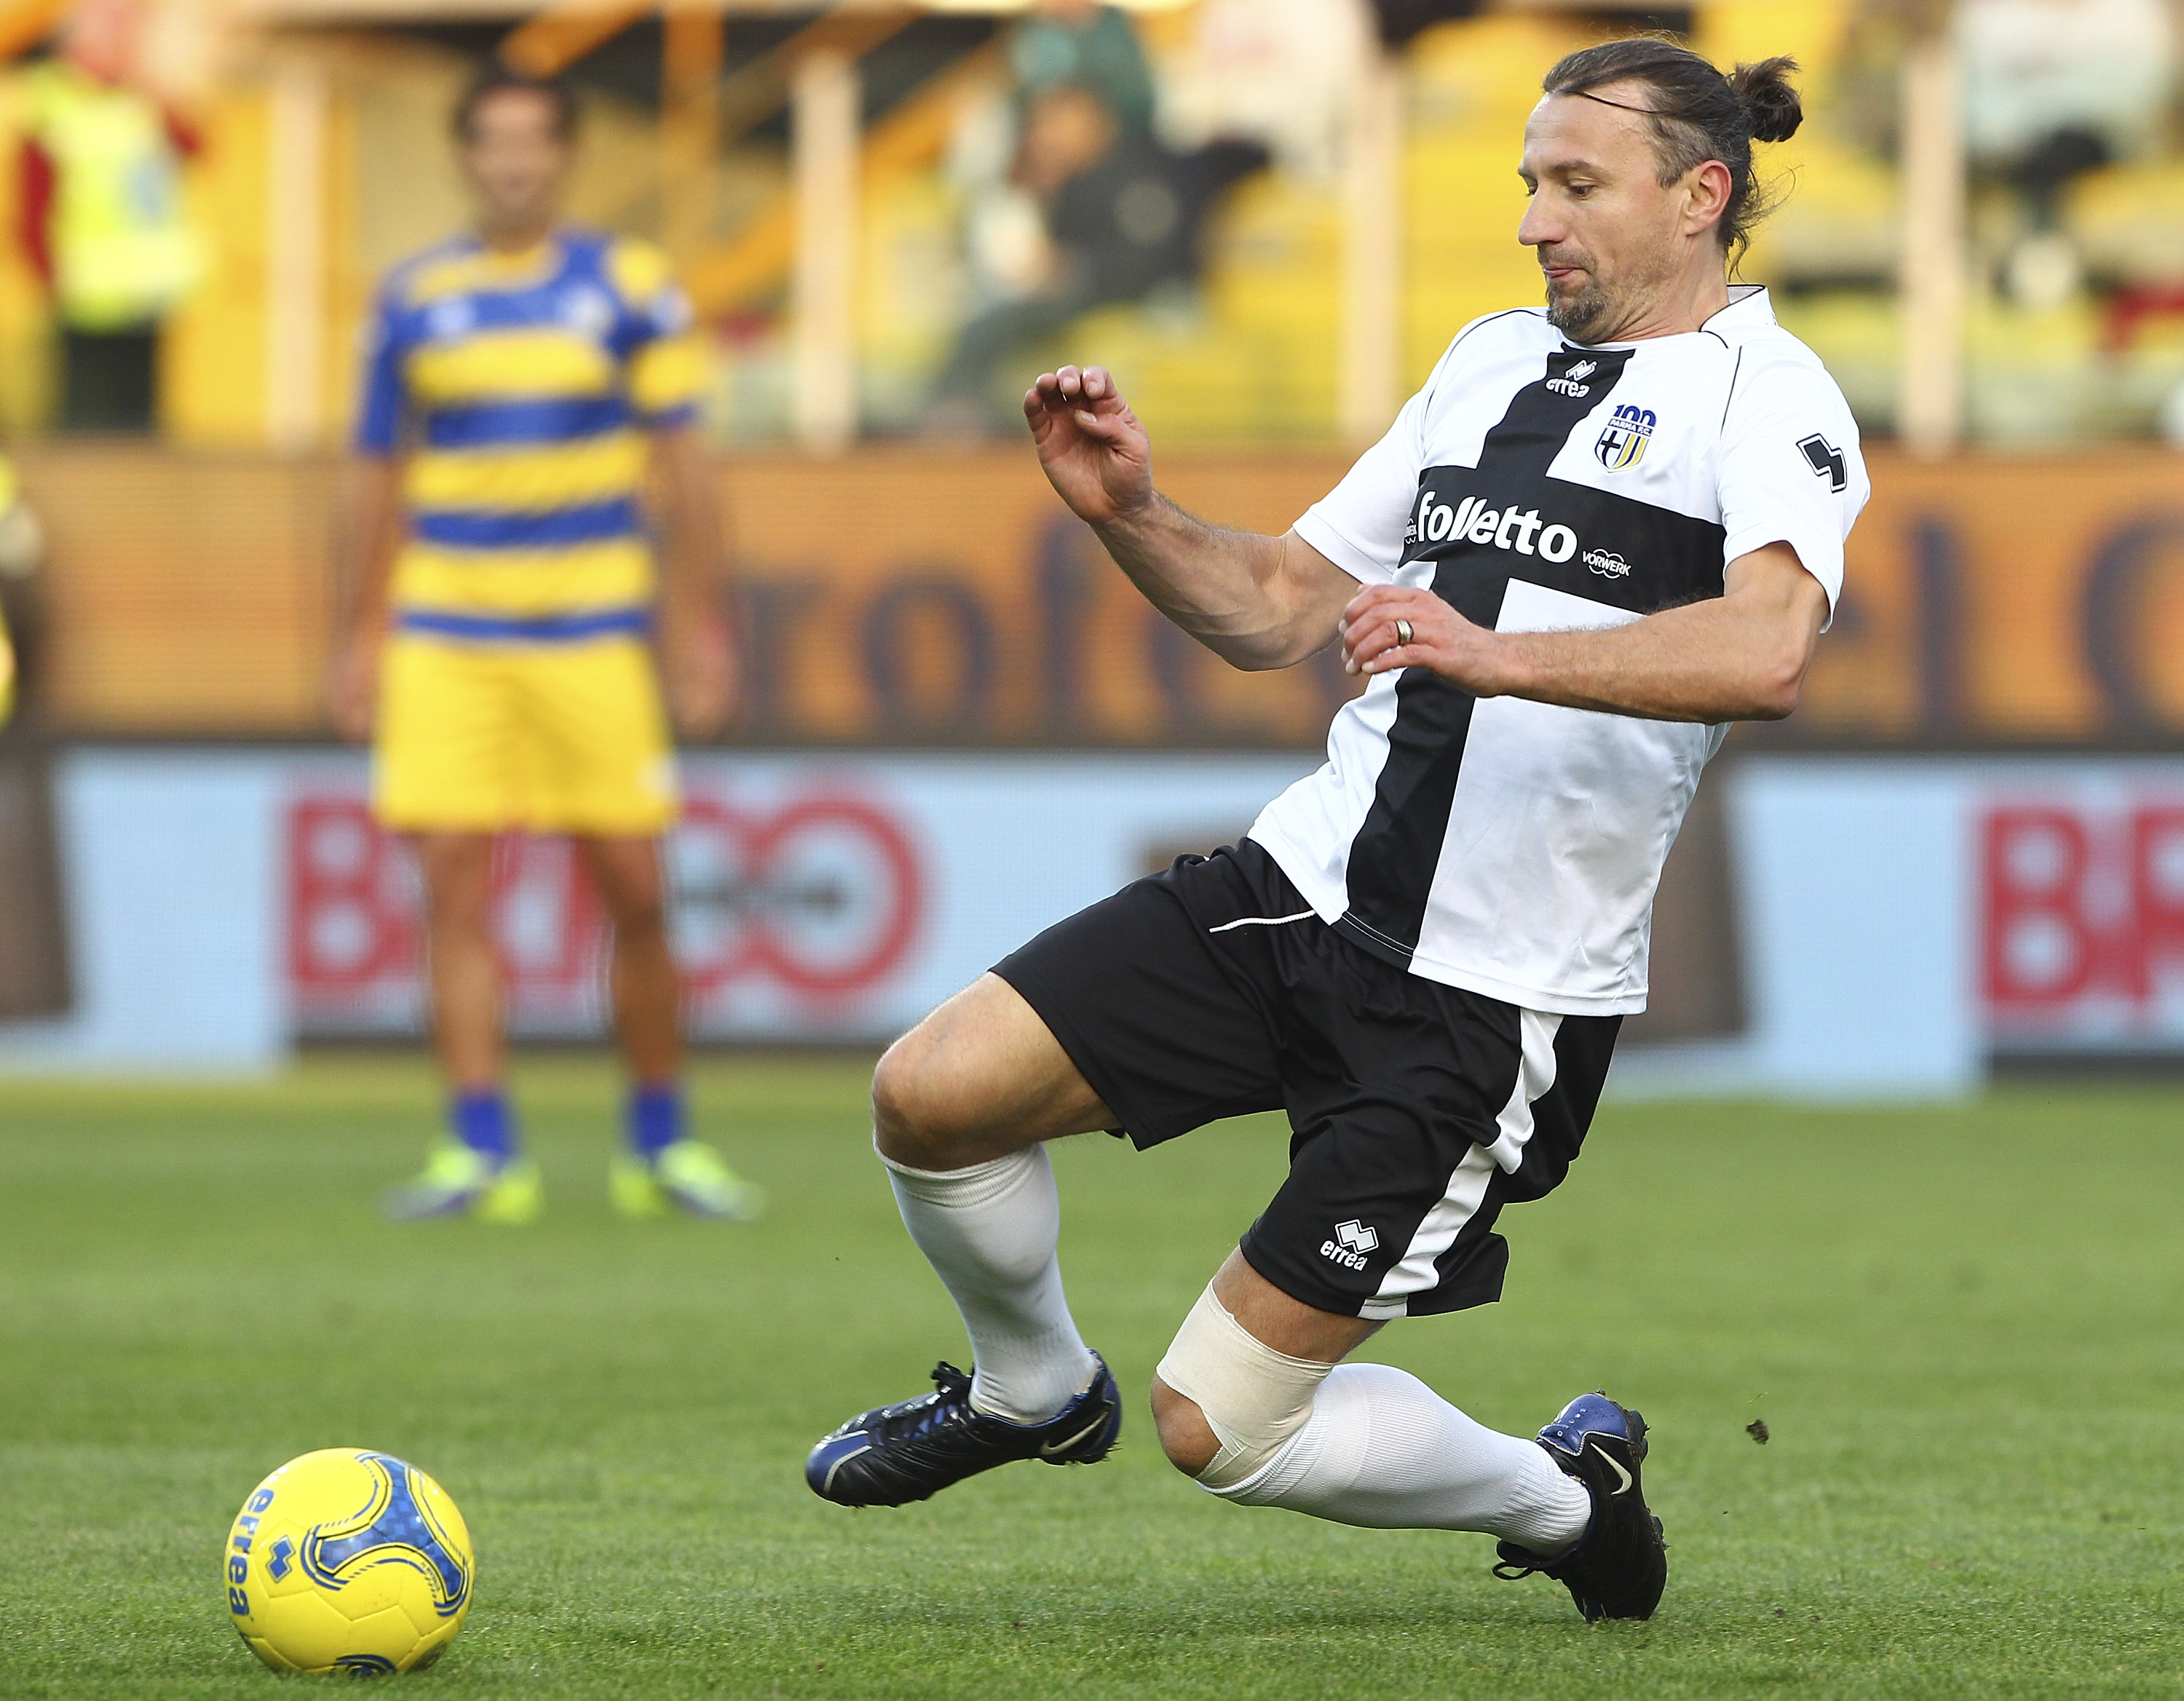 PARMA, ITALY - OCTOBER 13:  Mario Stanic of Stelle Crociate in action during the 100 Years Anniversary match between Stelle Crociate and US Stelle Gialloblu at Stadio Ennio Tardini on October 13, 2013 in Parma, Italy.  (Photo by Marco Luzzani/Getty Images)